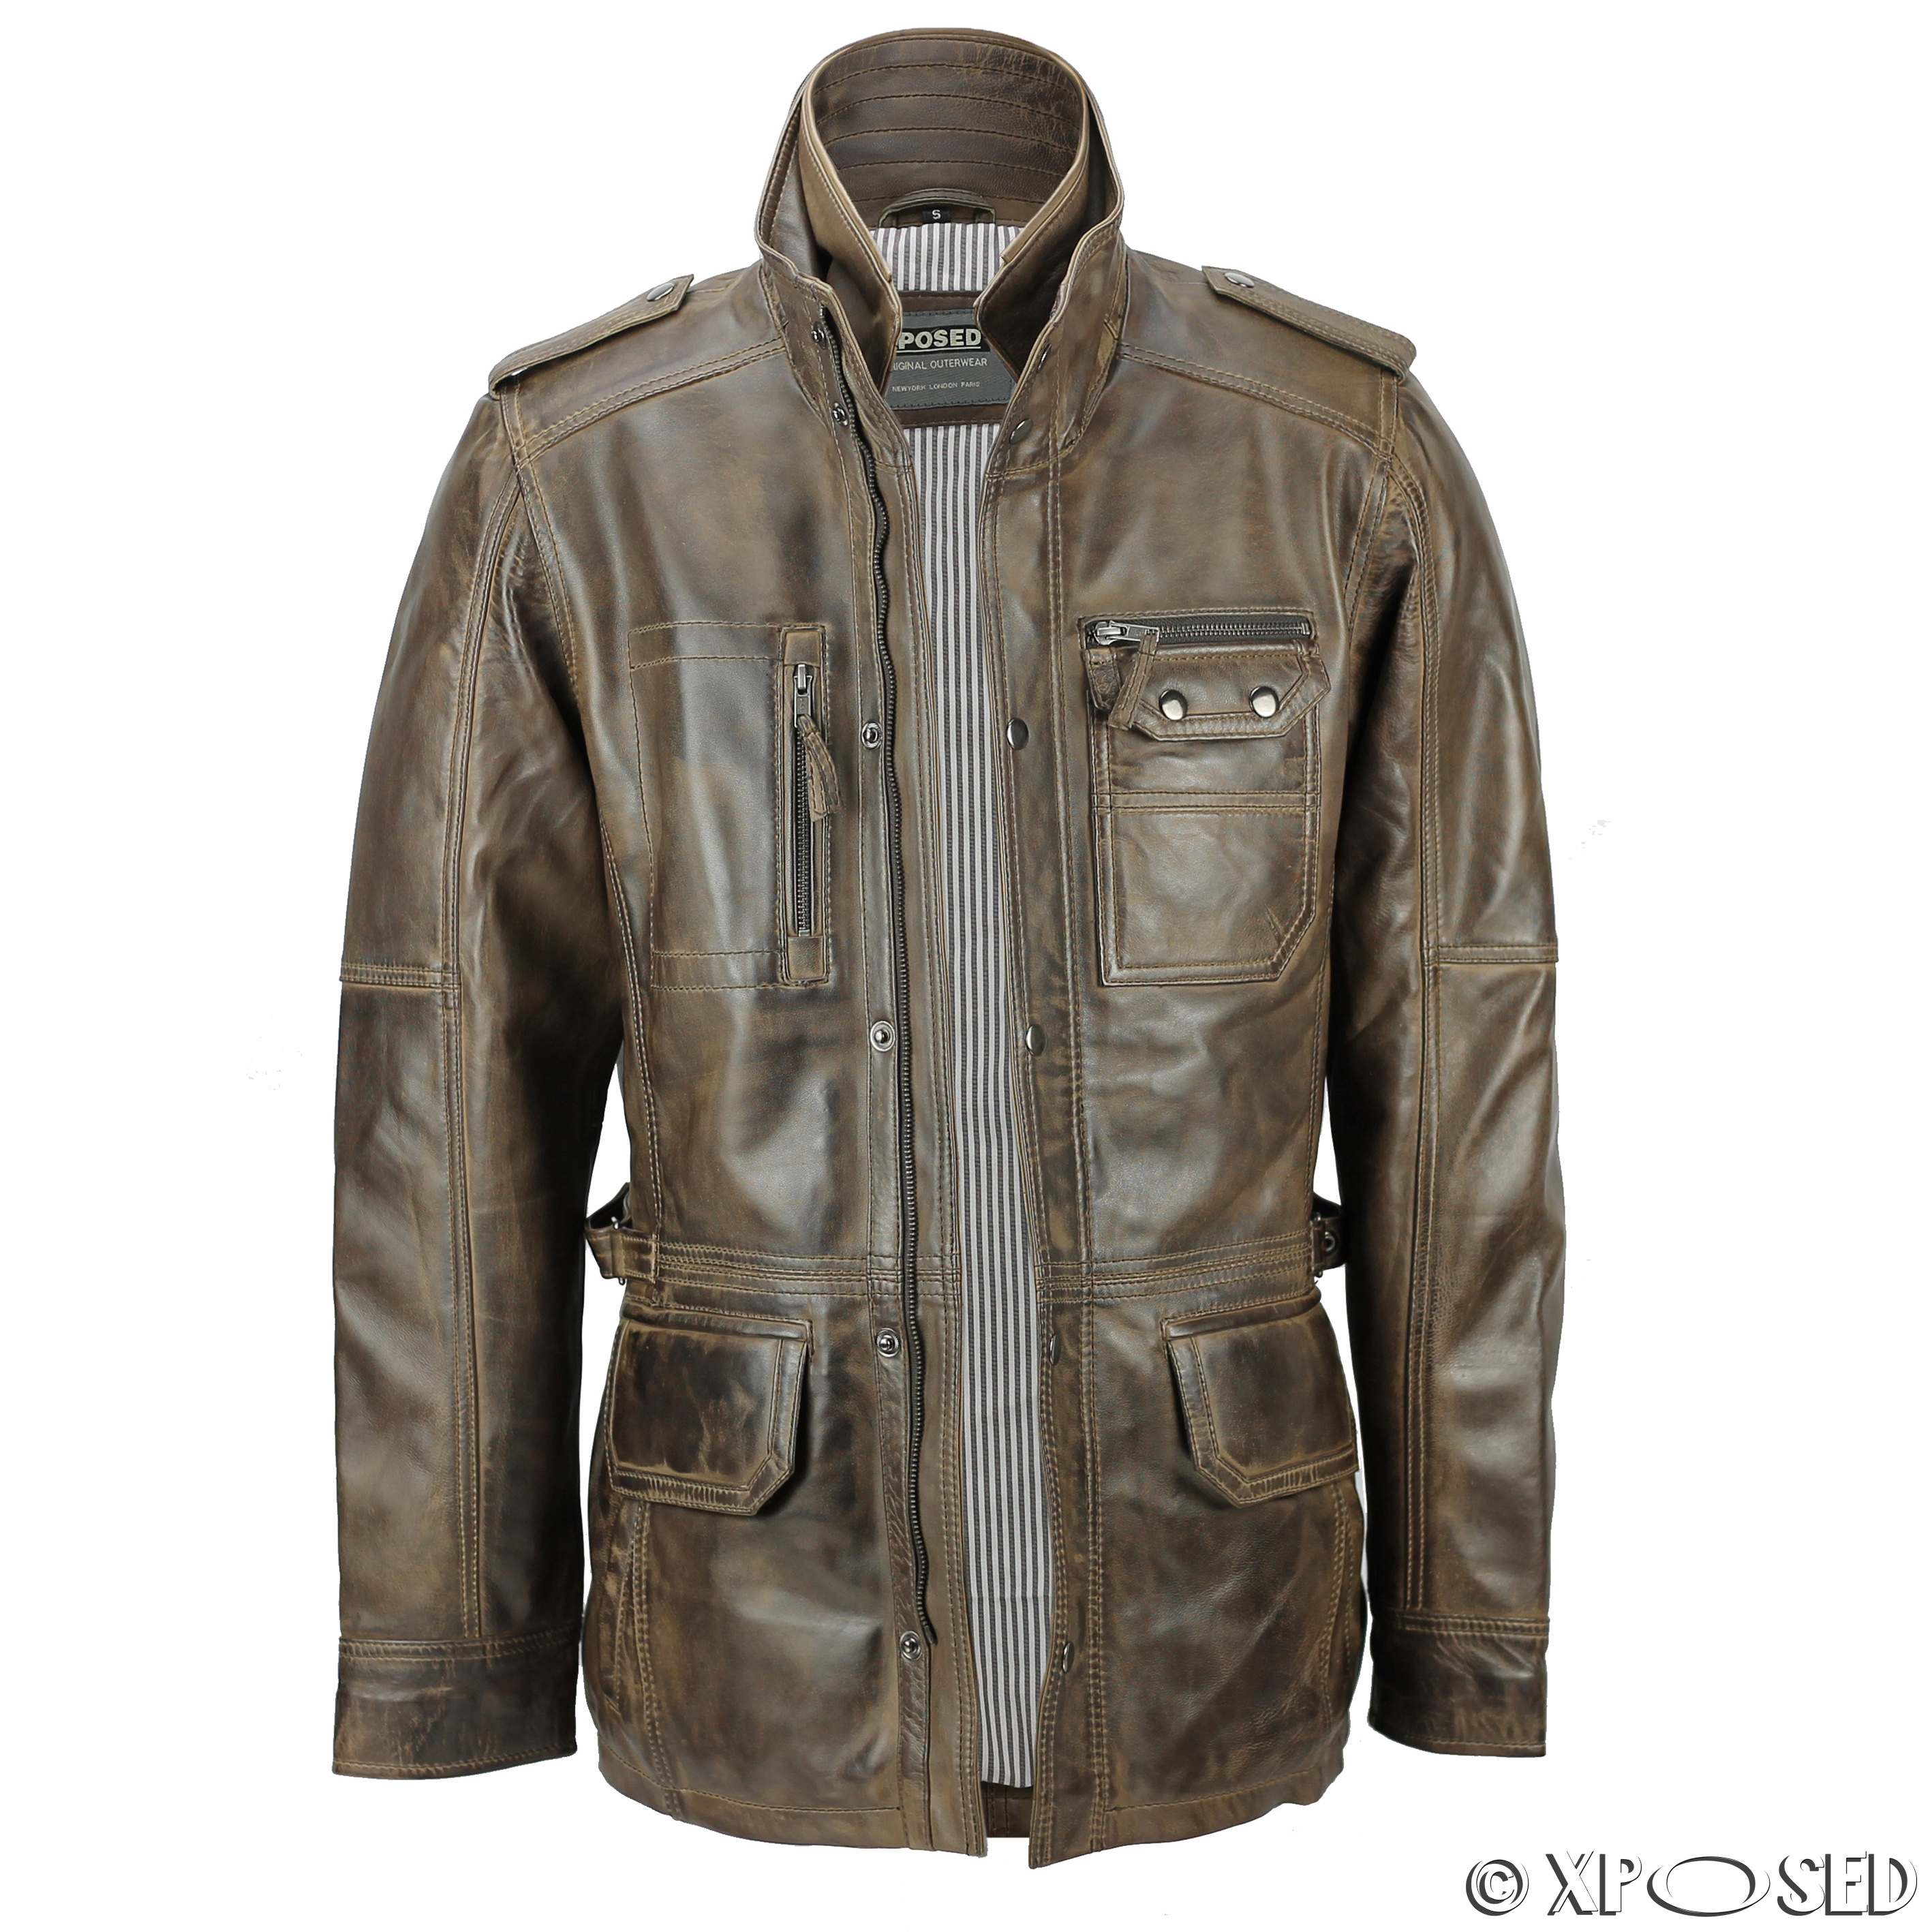 Retro leather jackets